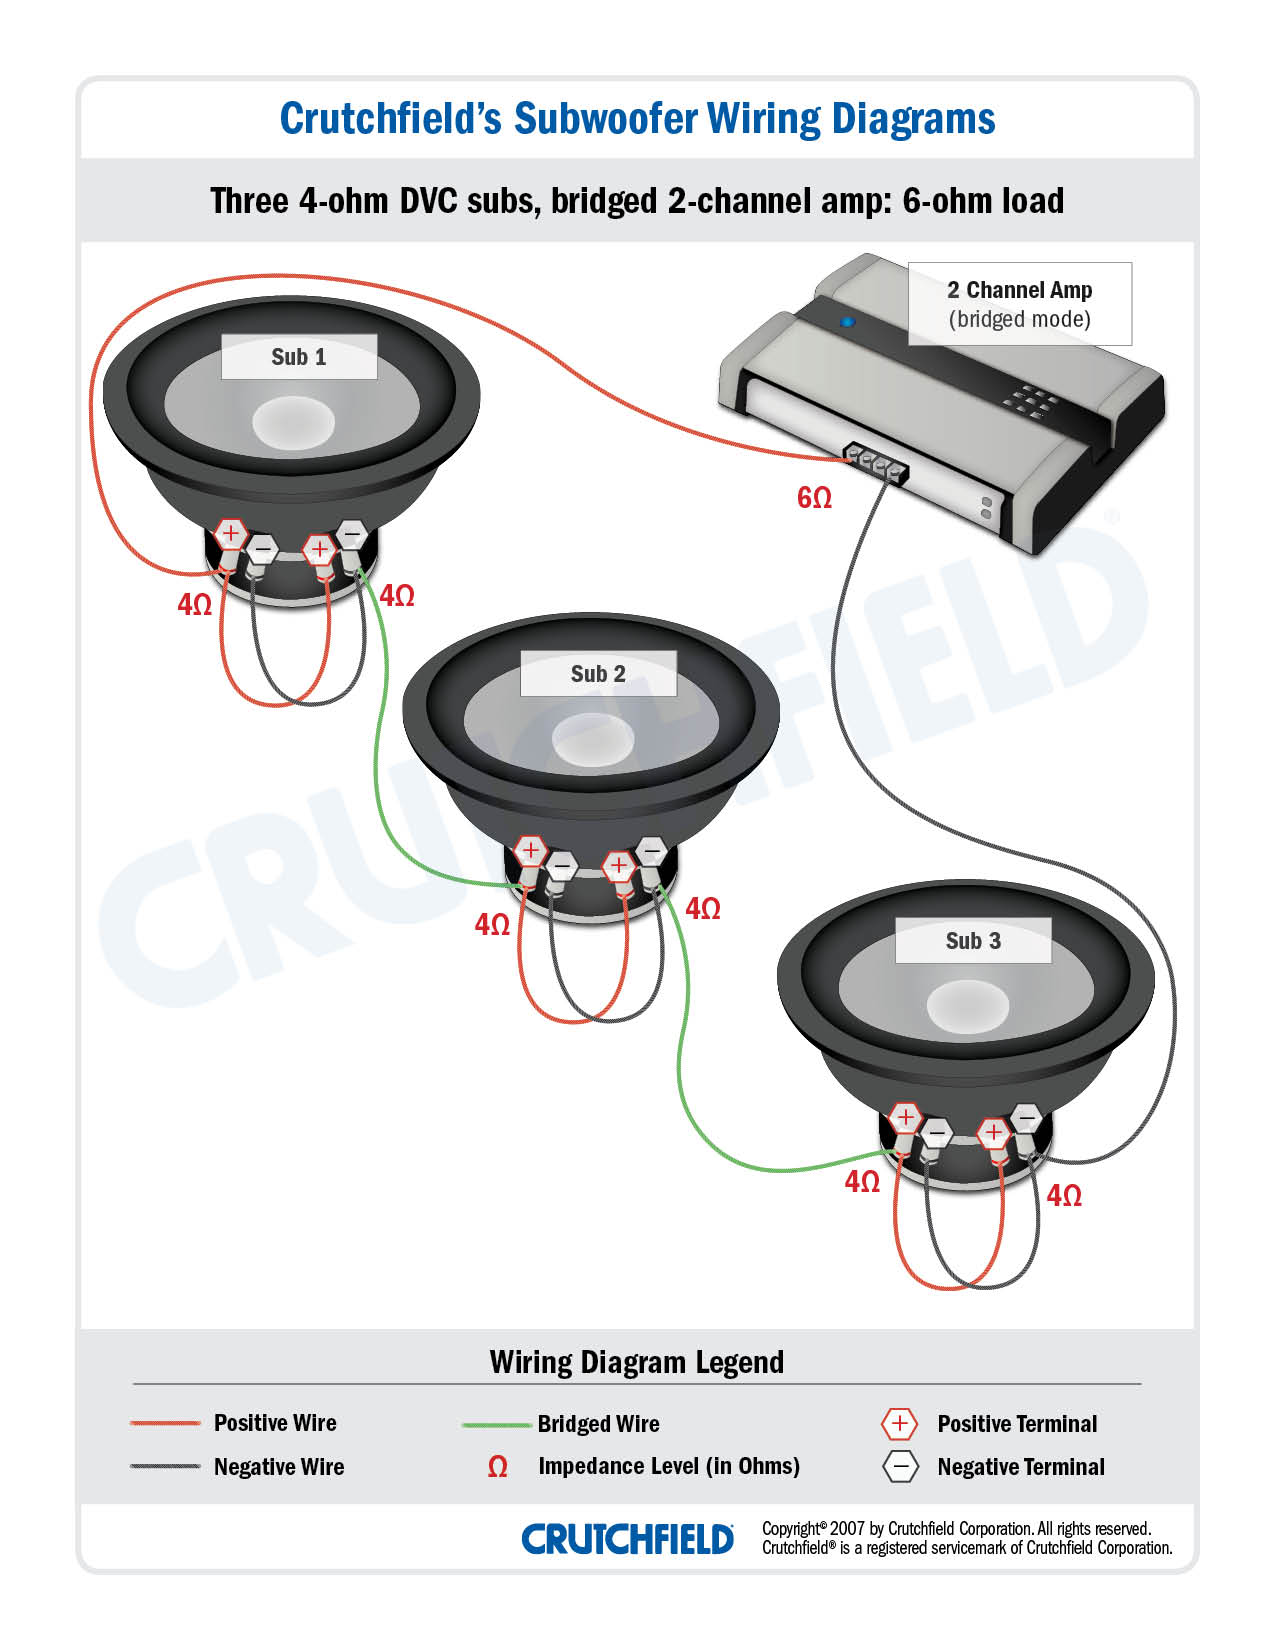 subwoofer wiring diagrams how to wire your subs rh crutchfield com Crutchfield Car Stereo Wire Diagram Dual 4 Ohm Svc Wiring-Diagram Crutchfield